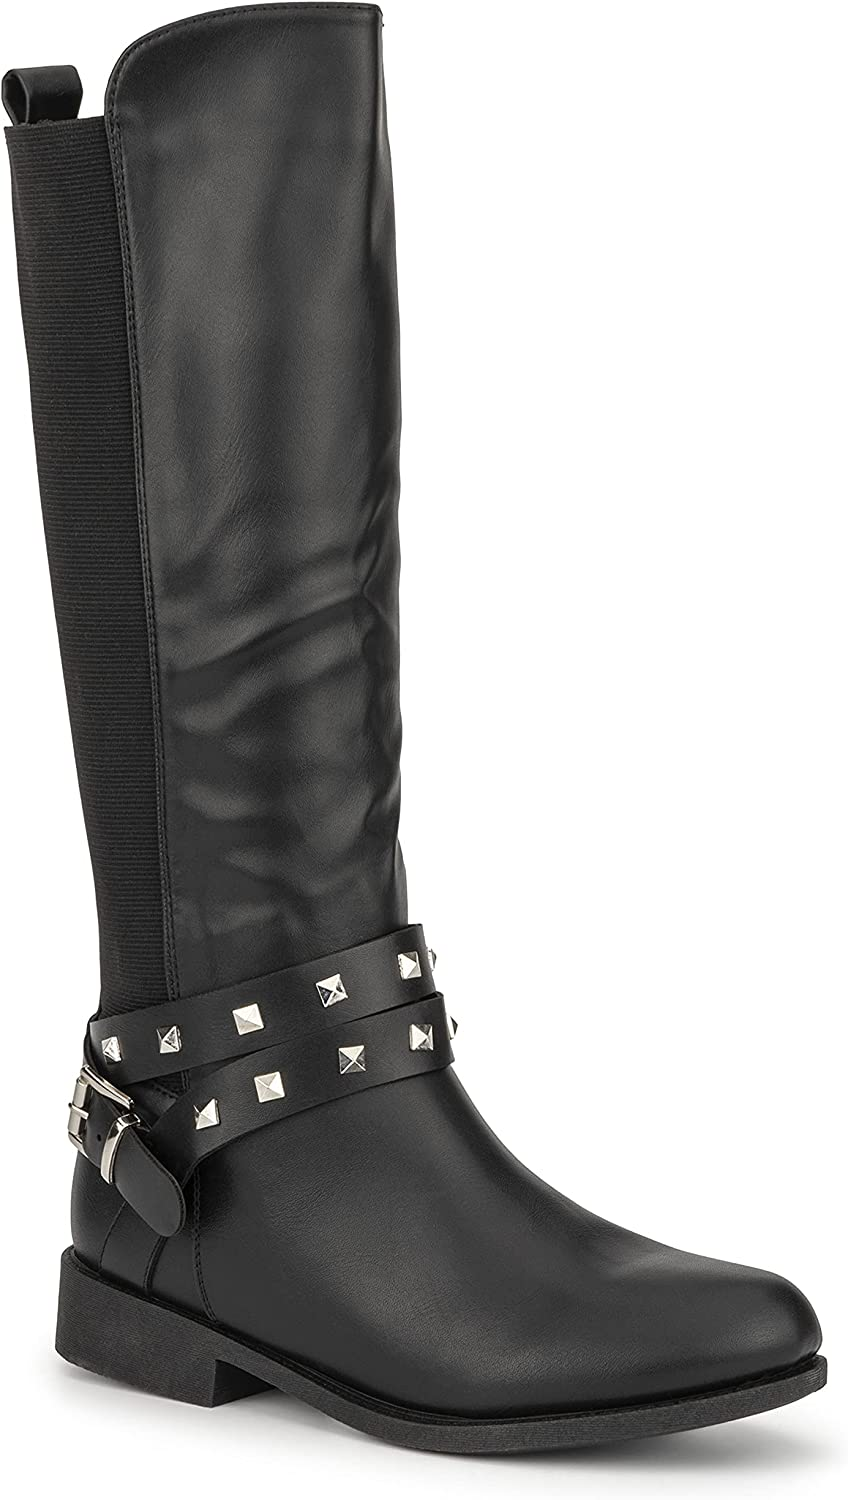 Olivia Miller Women's Fashion Shoes, PU Faux Leather Side Zipper Elastic Slip On Studded Strappy Casual Classic Knee High Riding Round Toe Boots